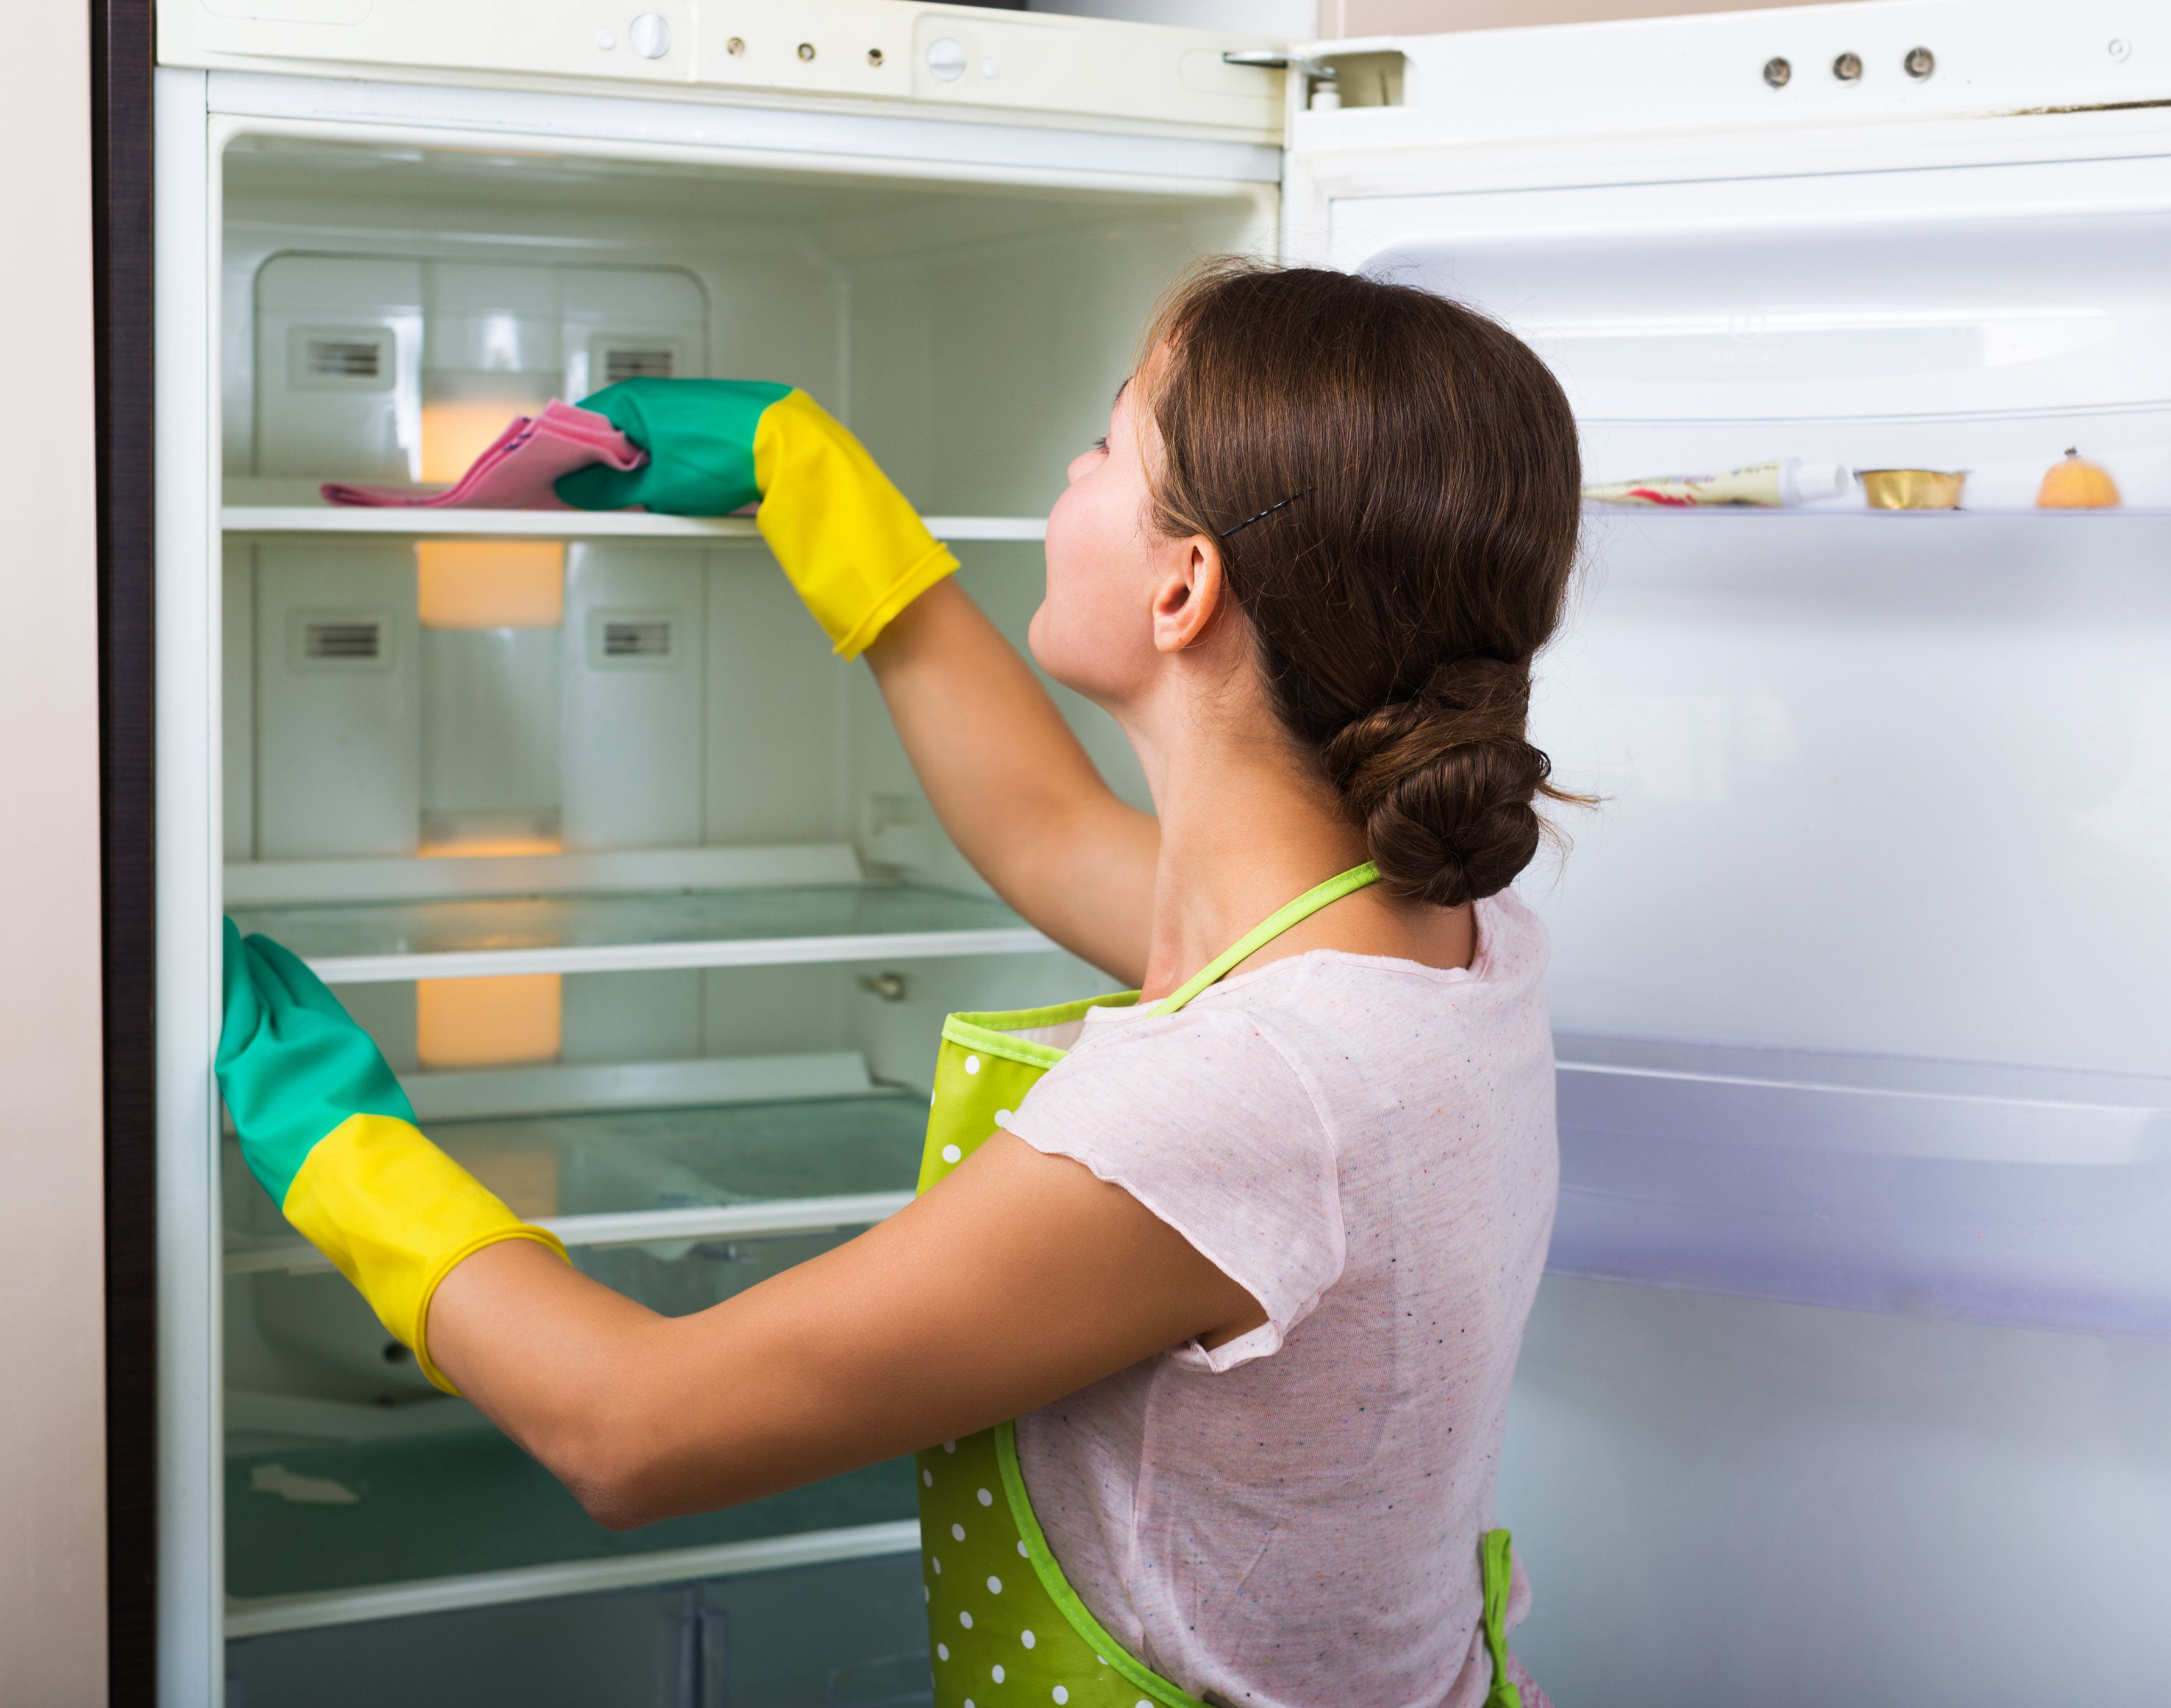 Adult housewife cleaning refrigerator inside and smiling